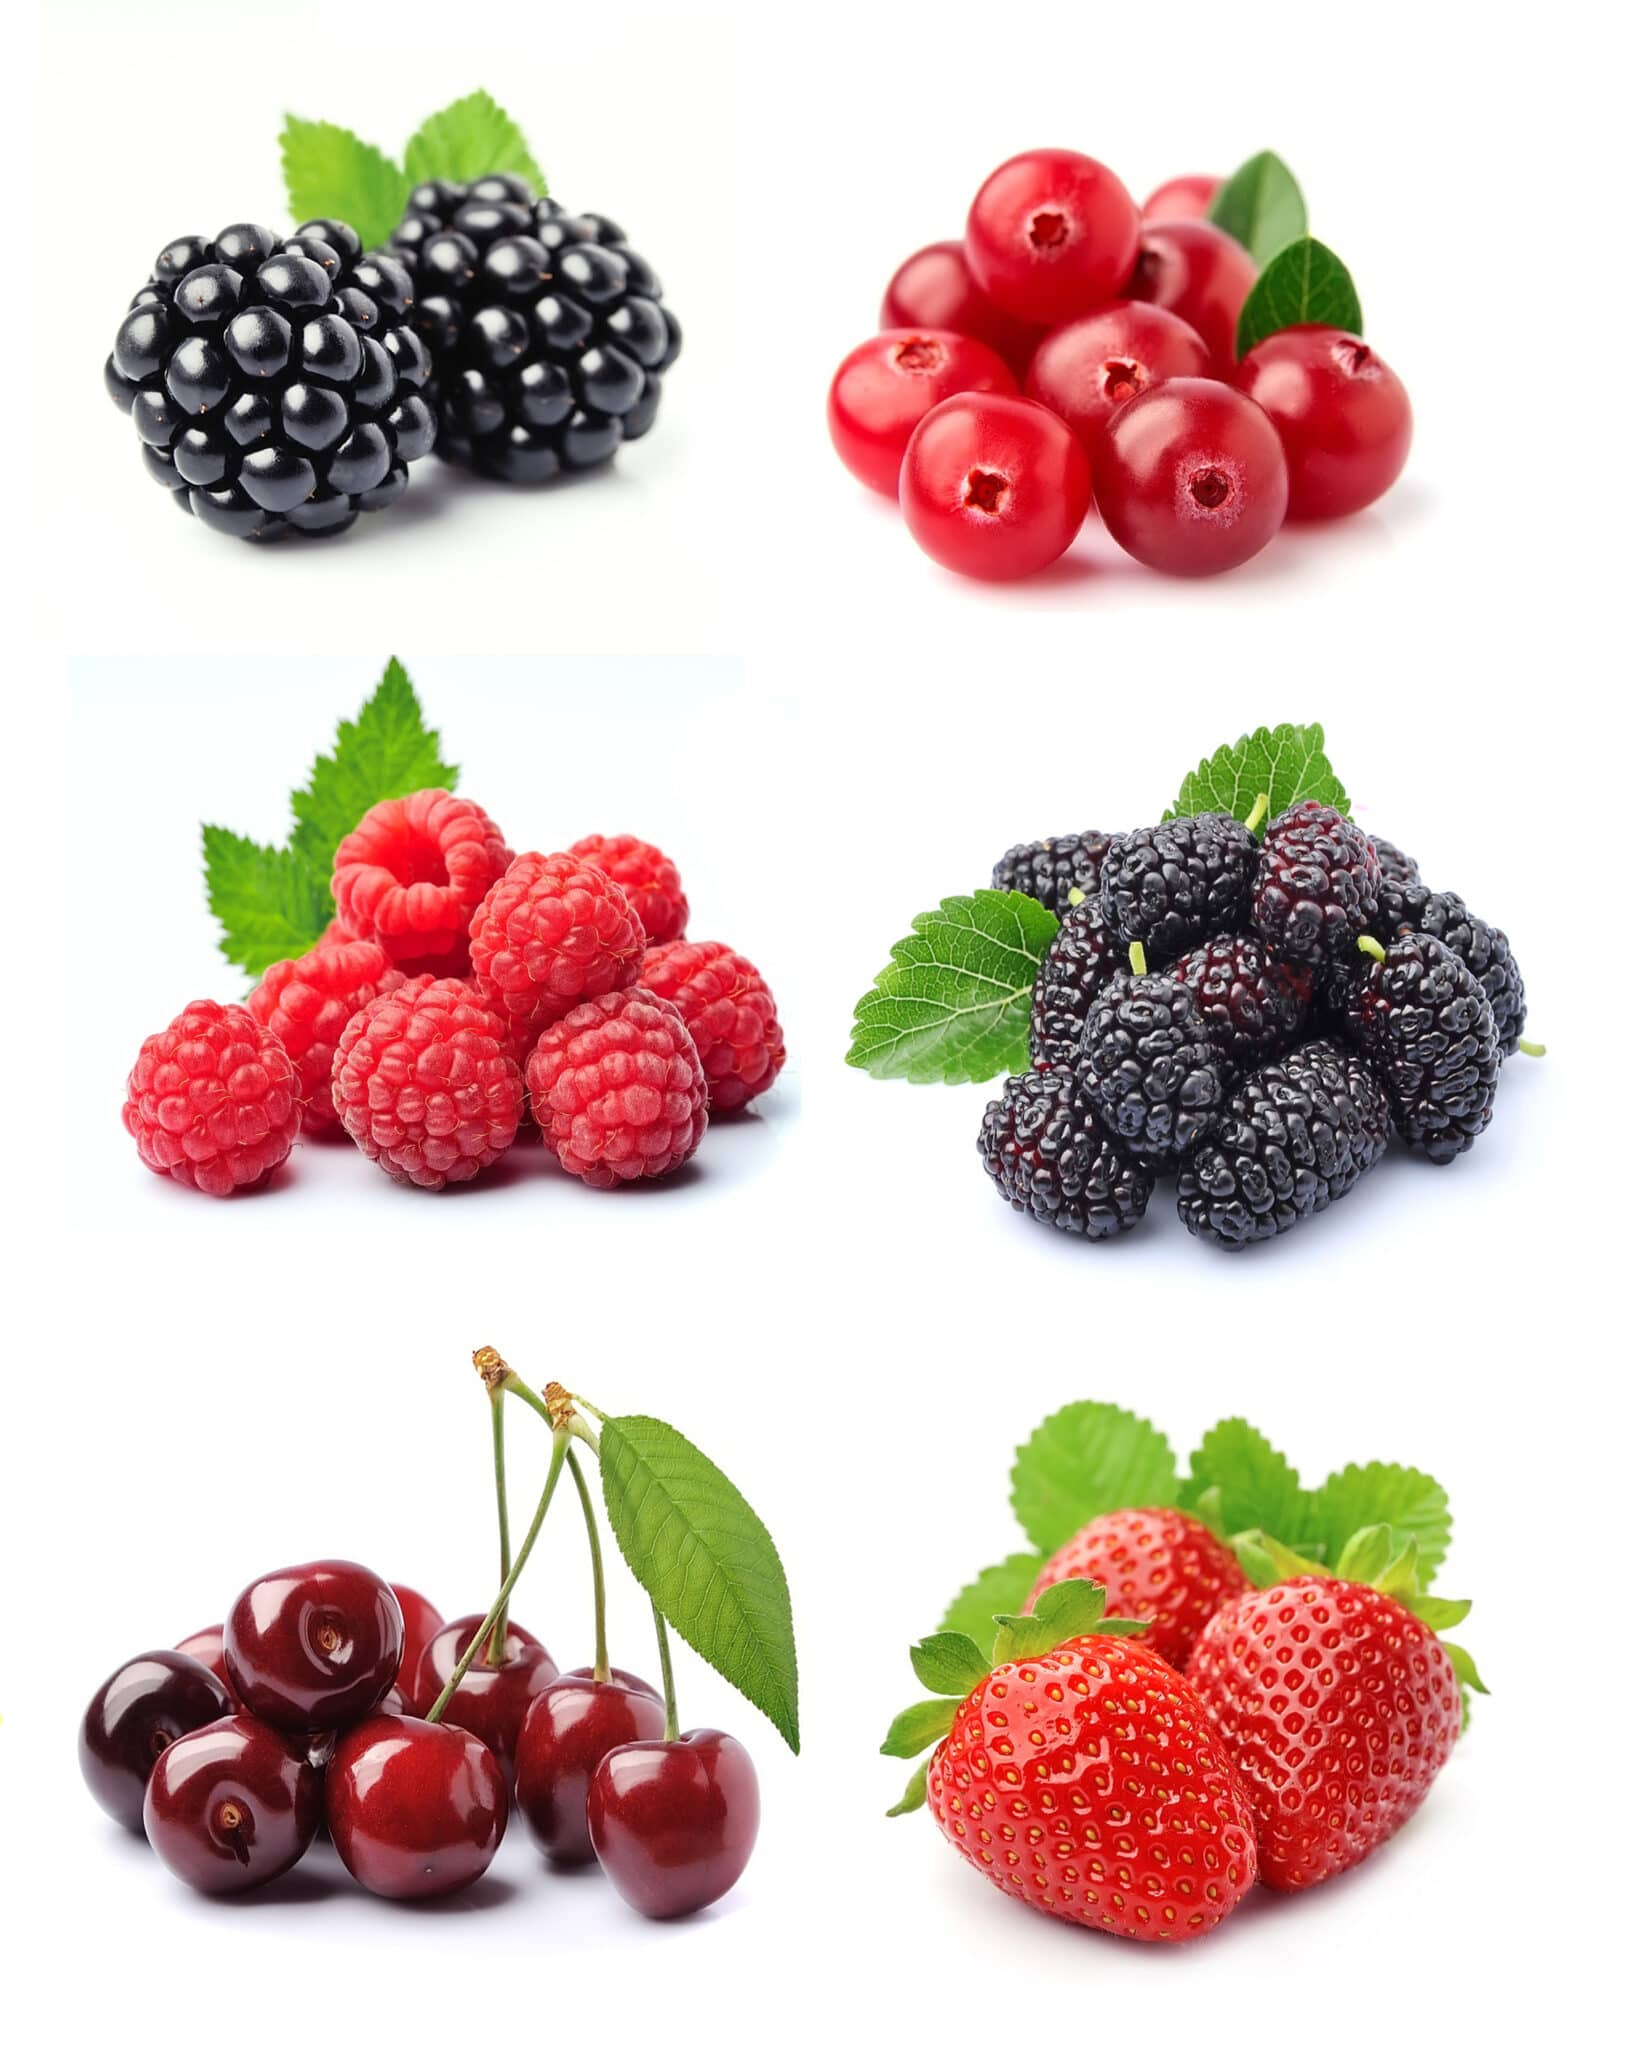 Low carb pantry essential berries & fruit isolated on a bright white background (cherries, blackberries, currents, raspberries, and strawberries)